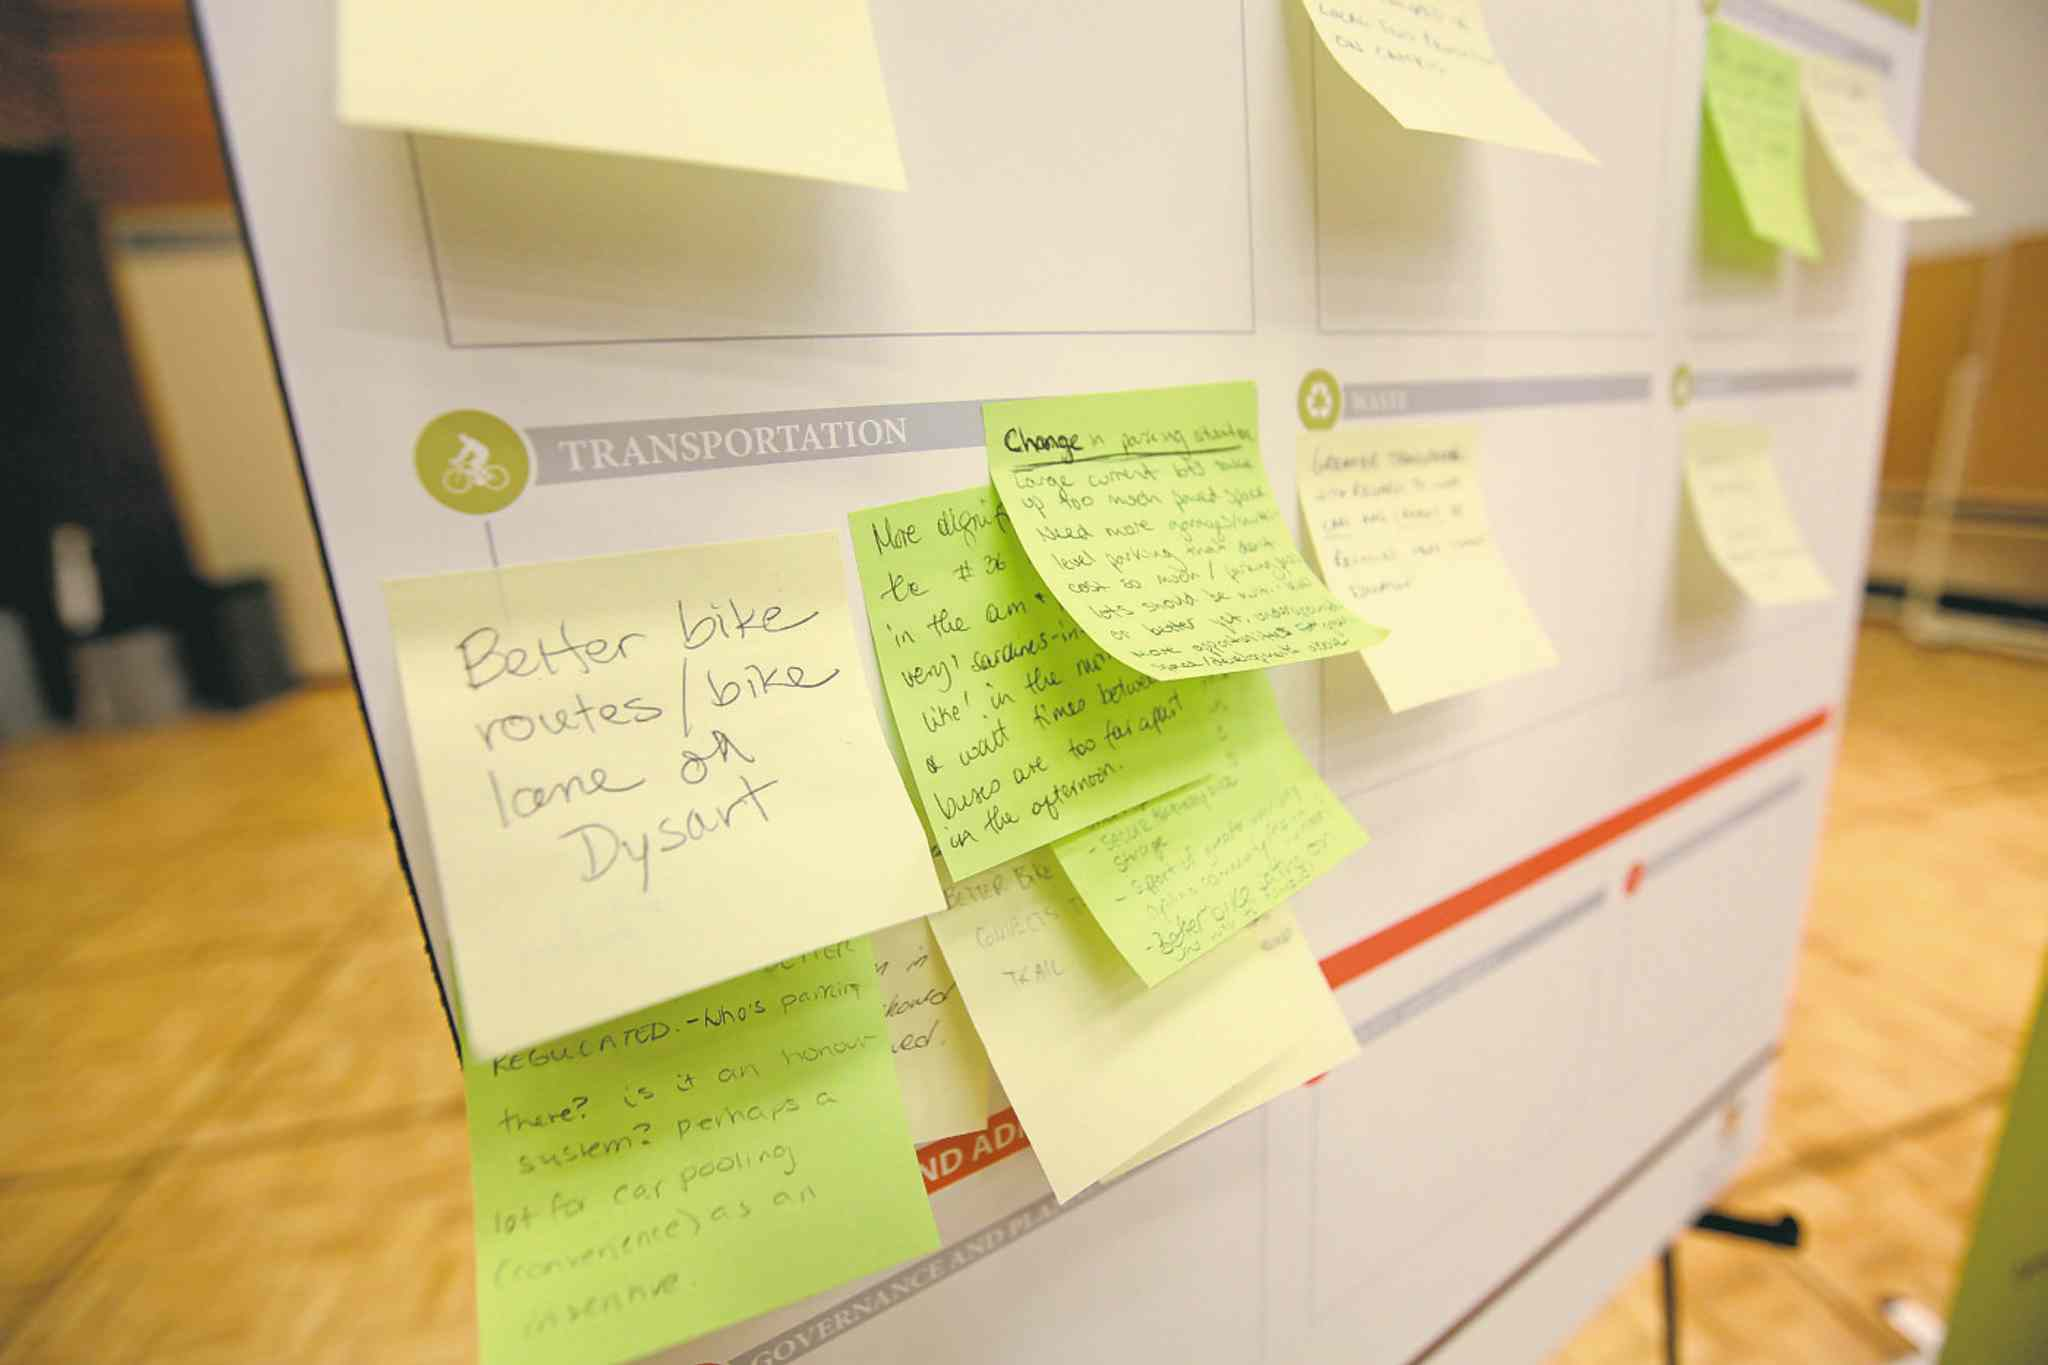 Comments regarding transportation are left on sticky notes.